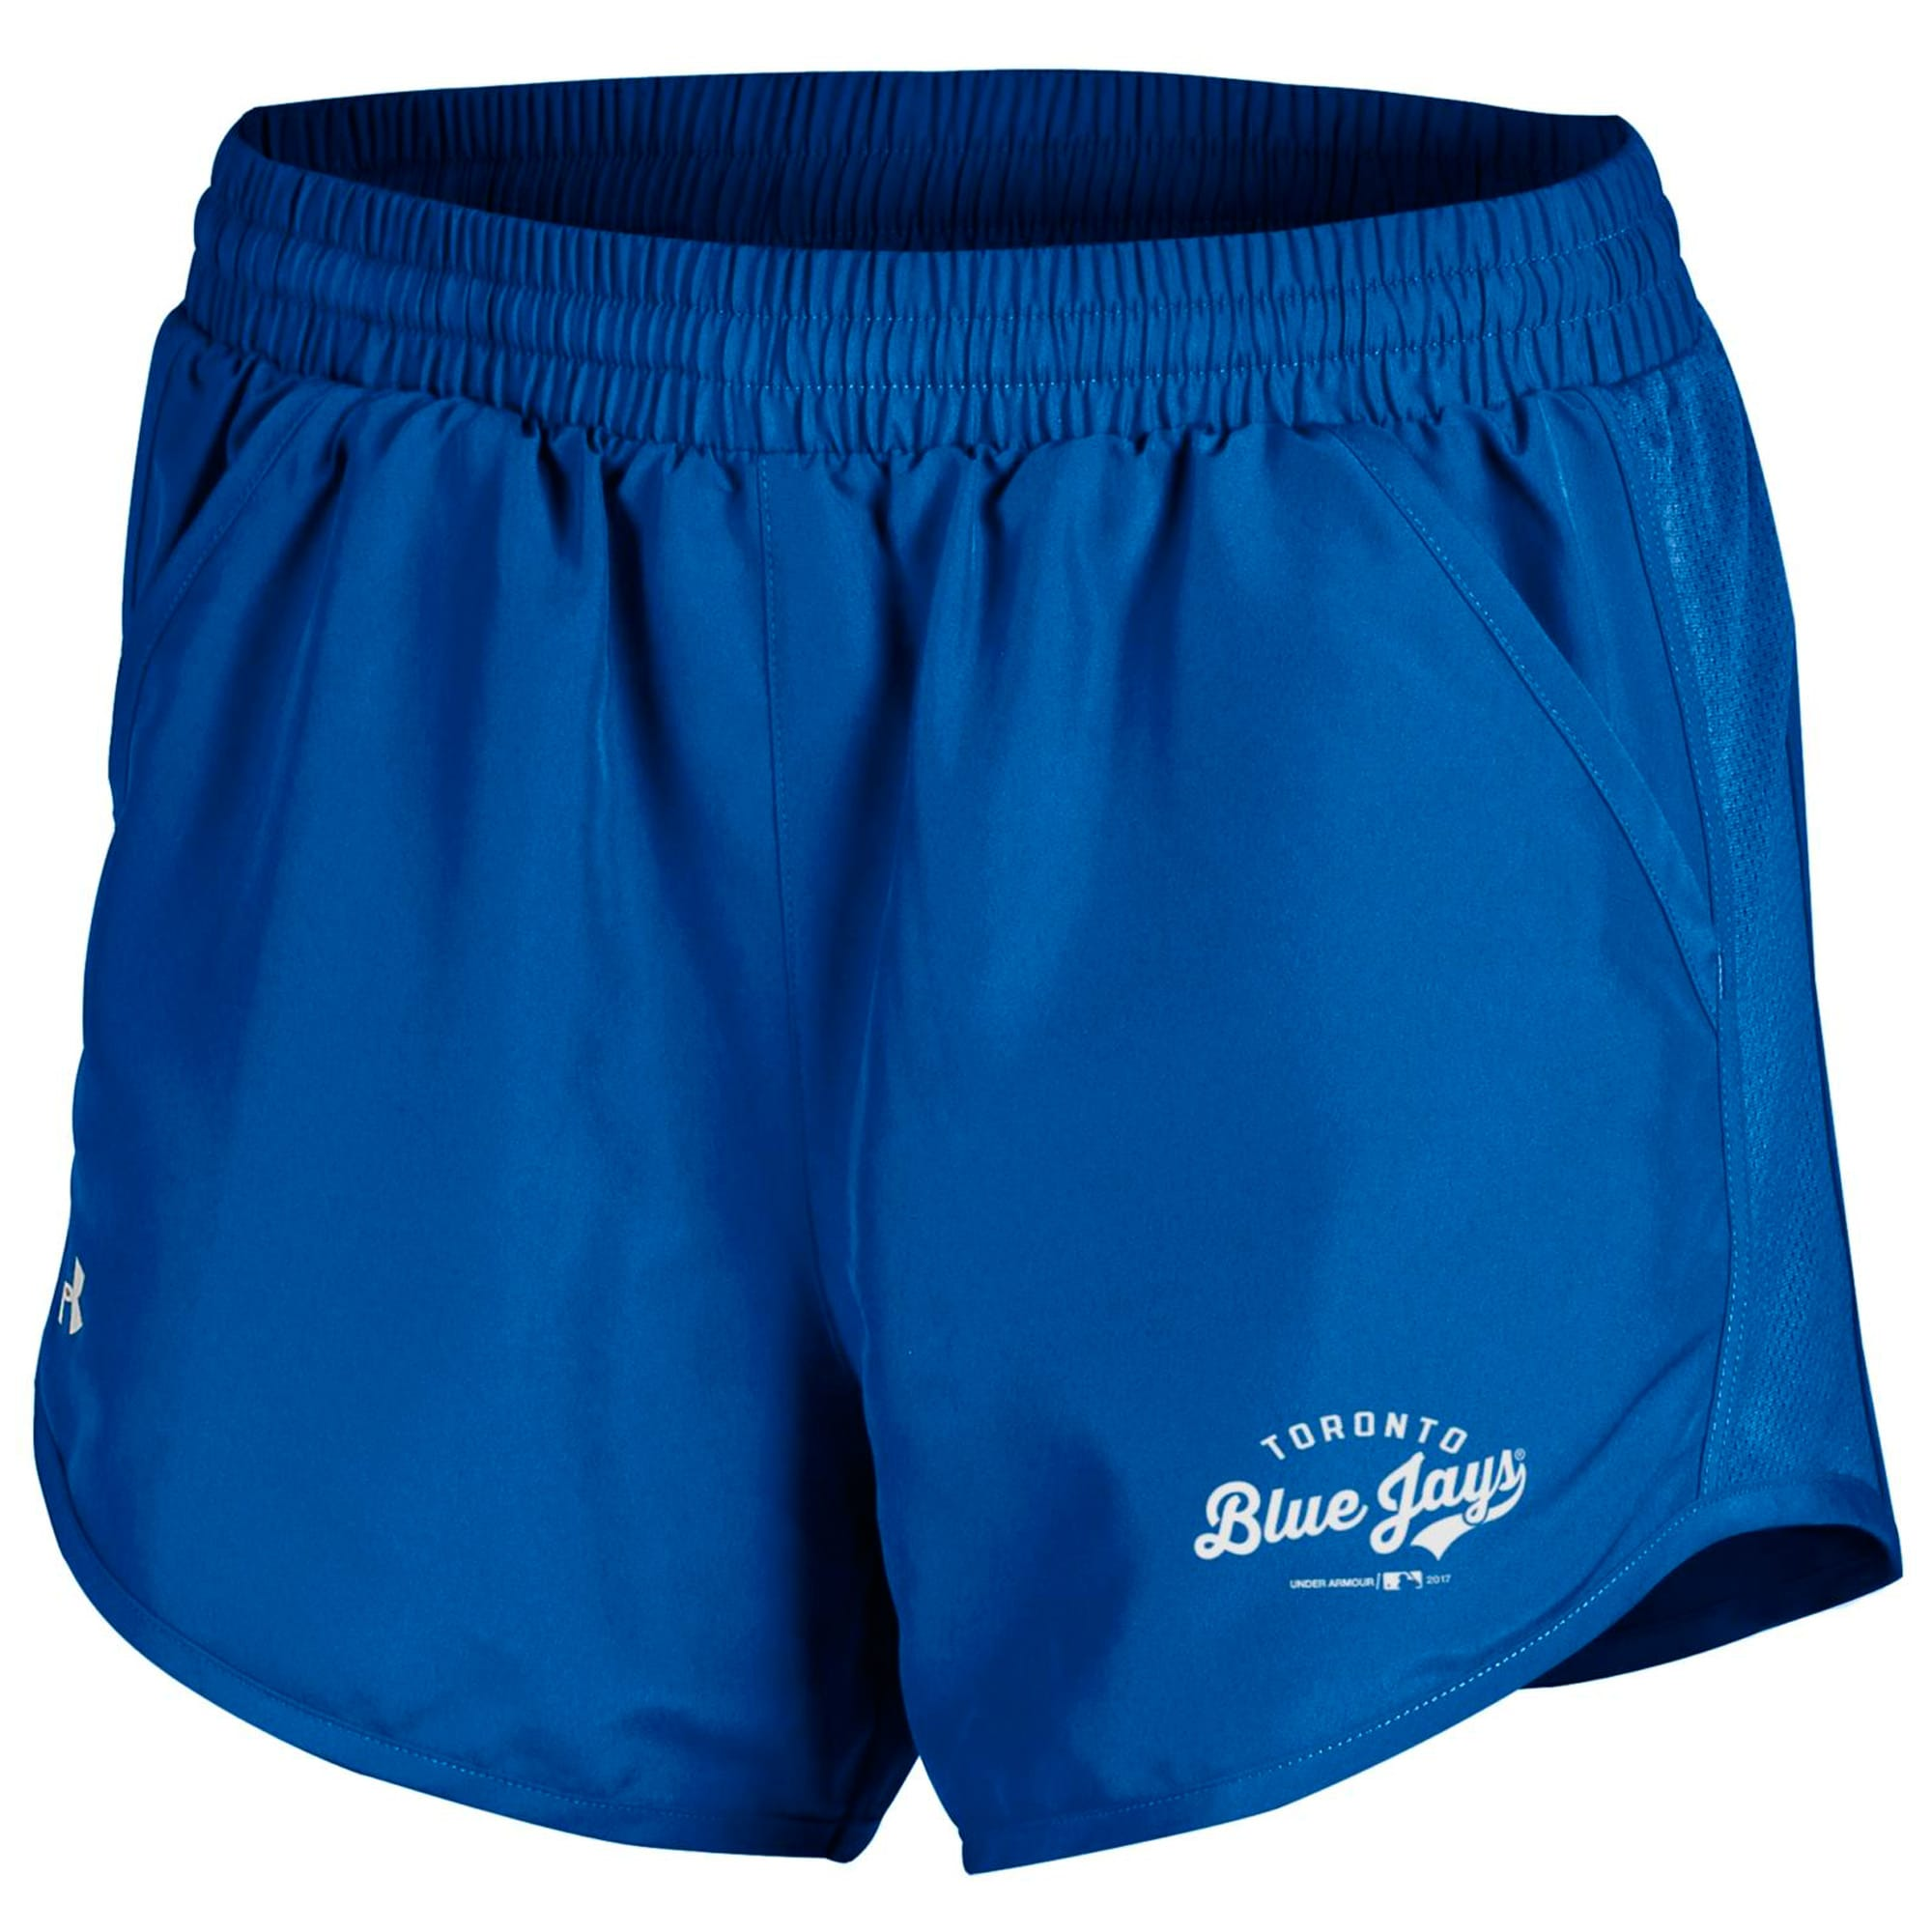 Toronto Blue Jays Under Armour Women's Fly By Running Shorts - Royal